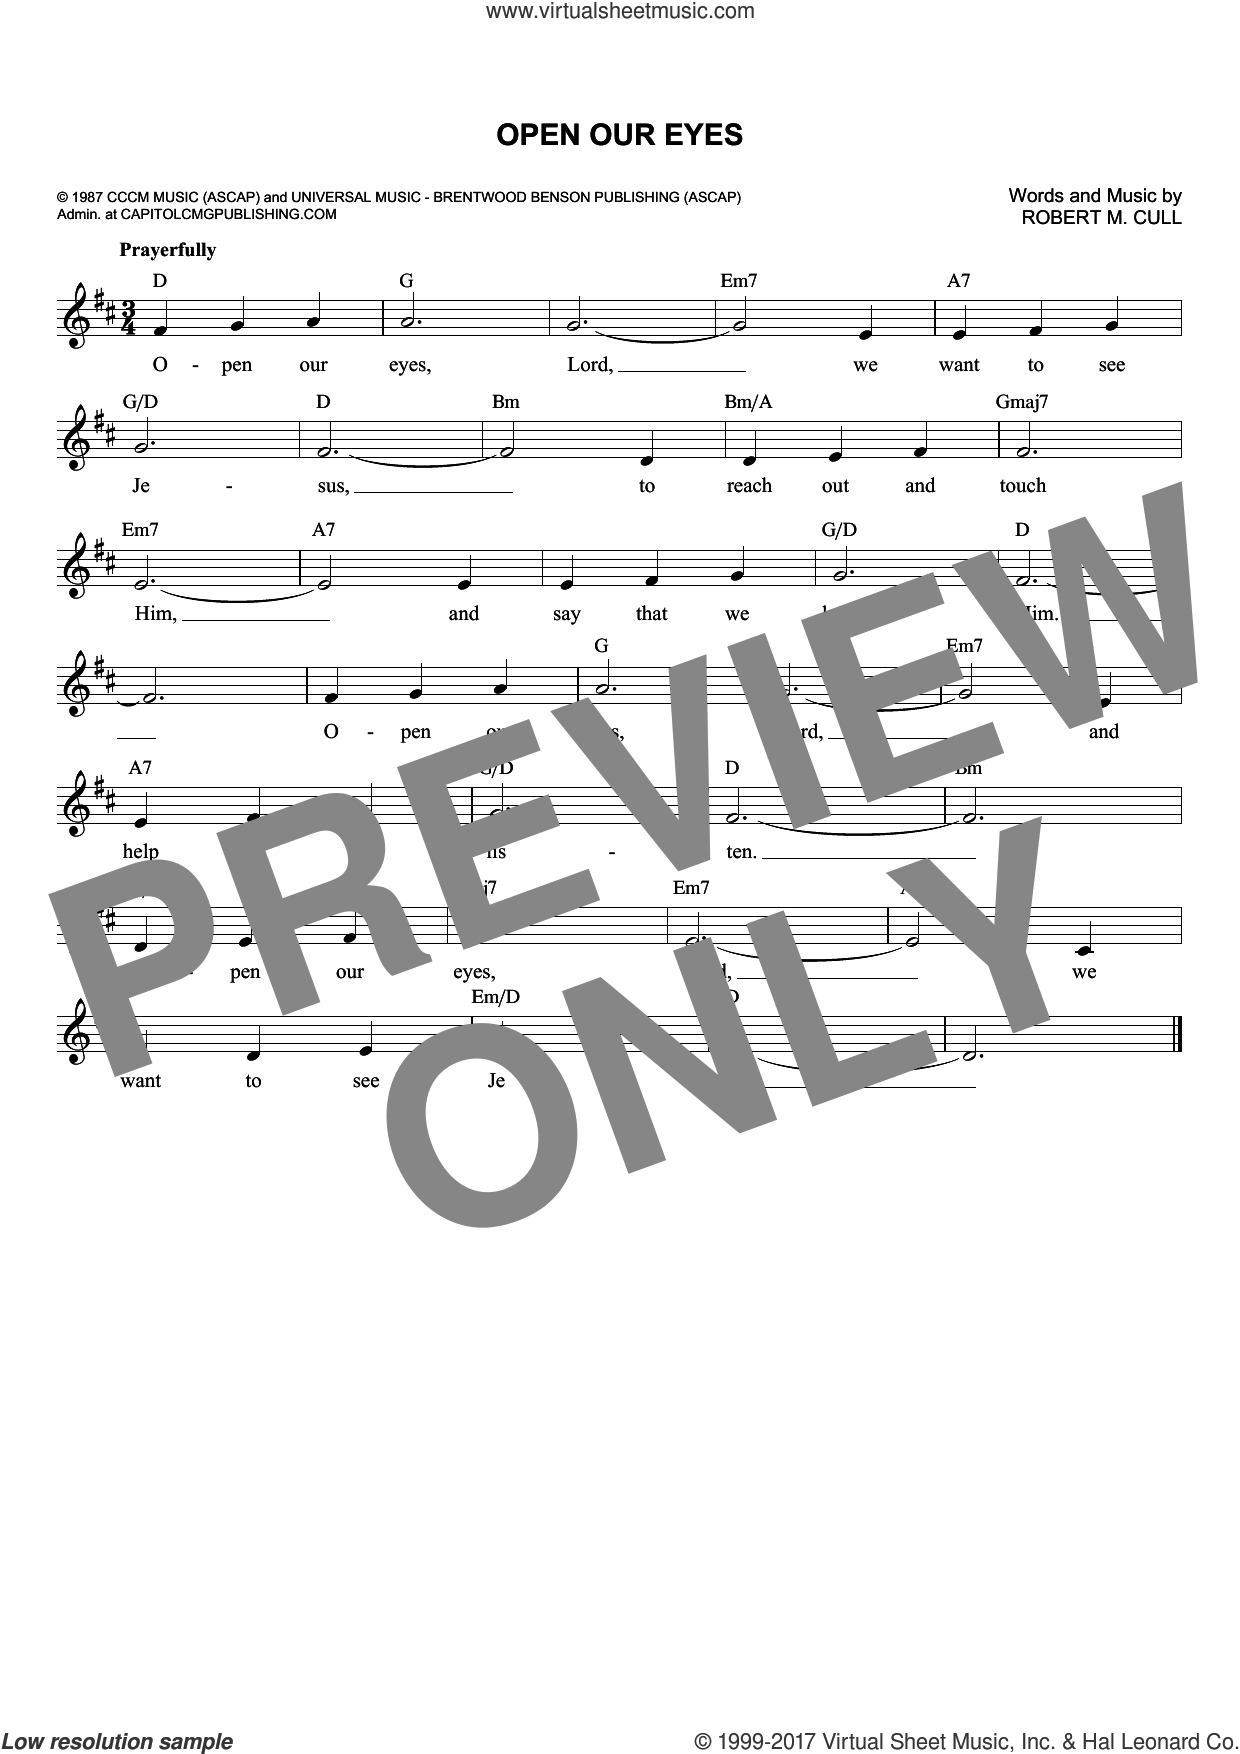 Open Our Eyes sheet music for voice and other instruments (fake book) by Robert M. Cull, intermediate skill level